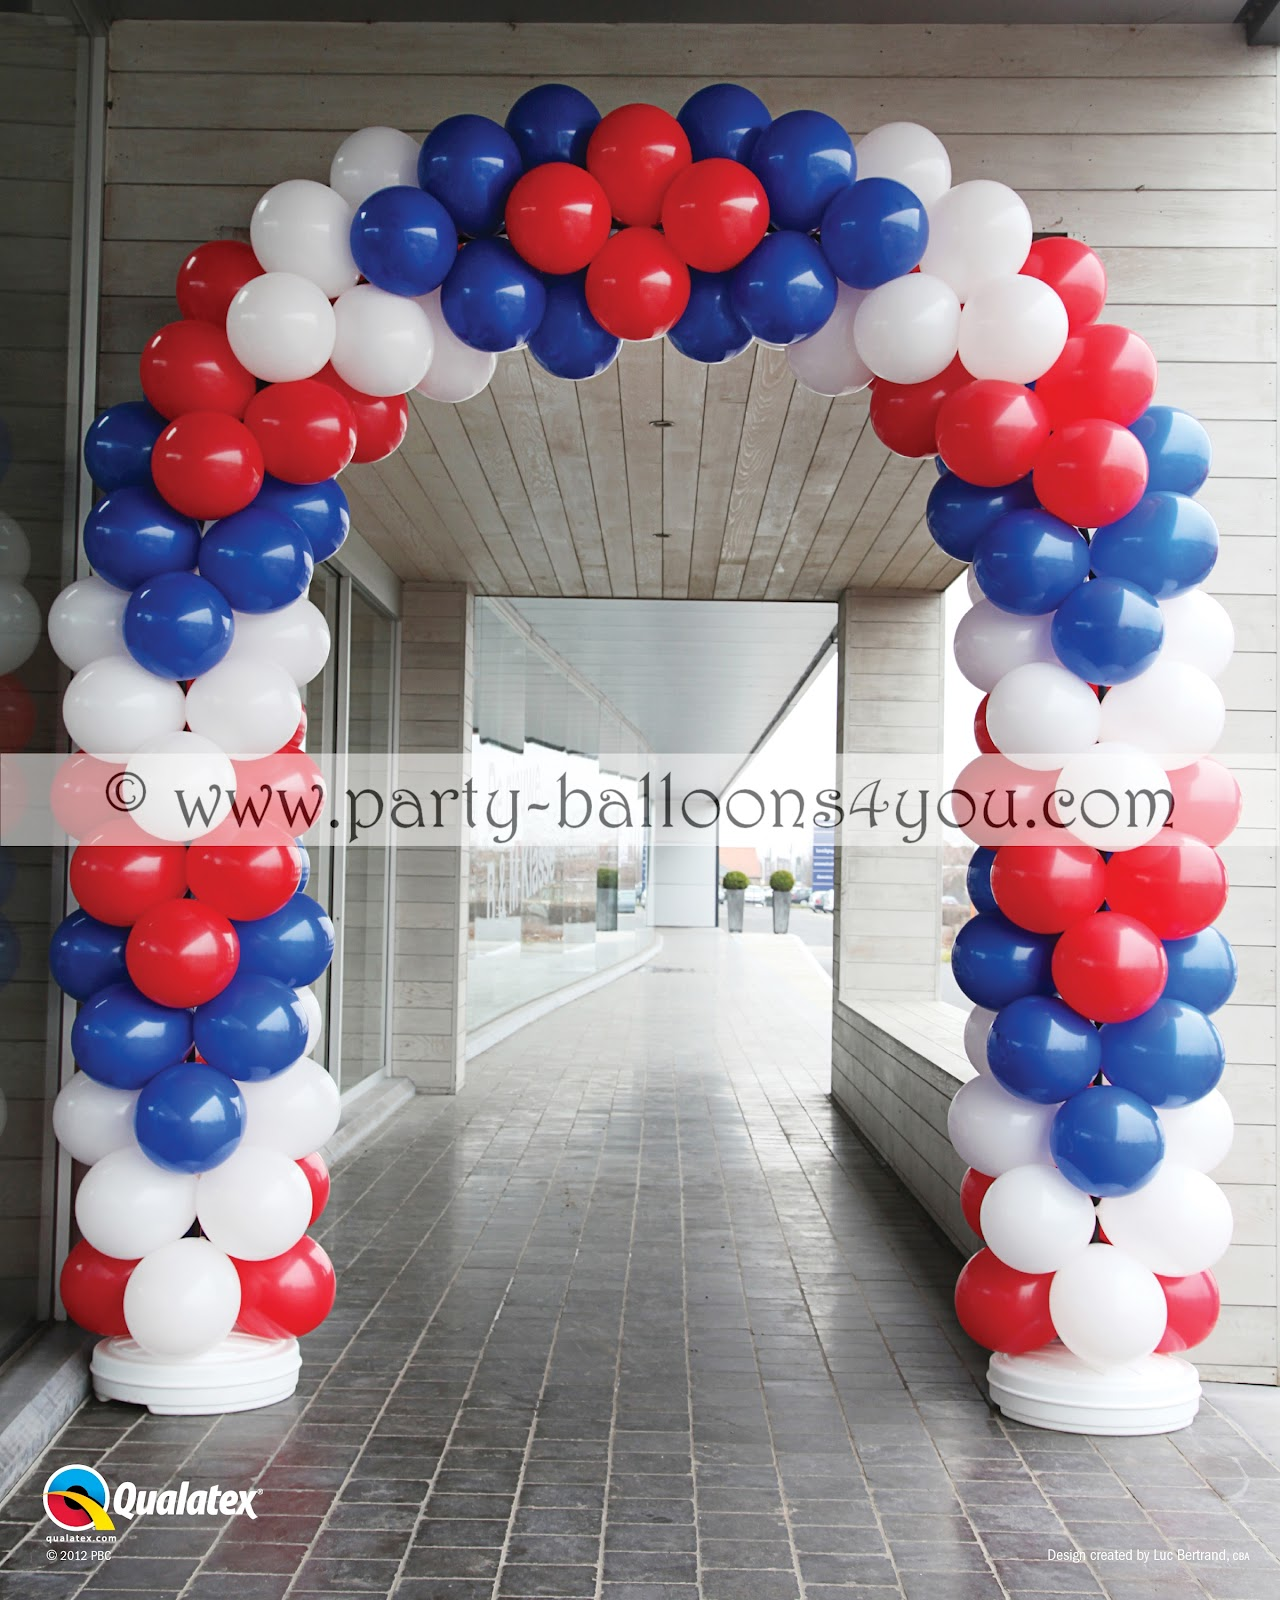 Party Balloons 4 You: Queen's Diamond Jubilee Balloon Decorations